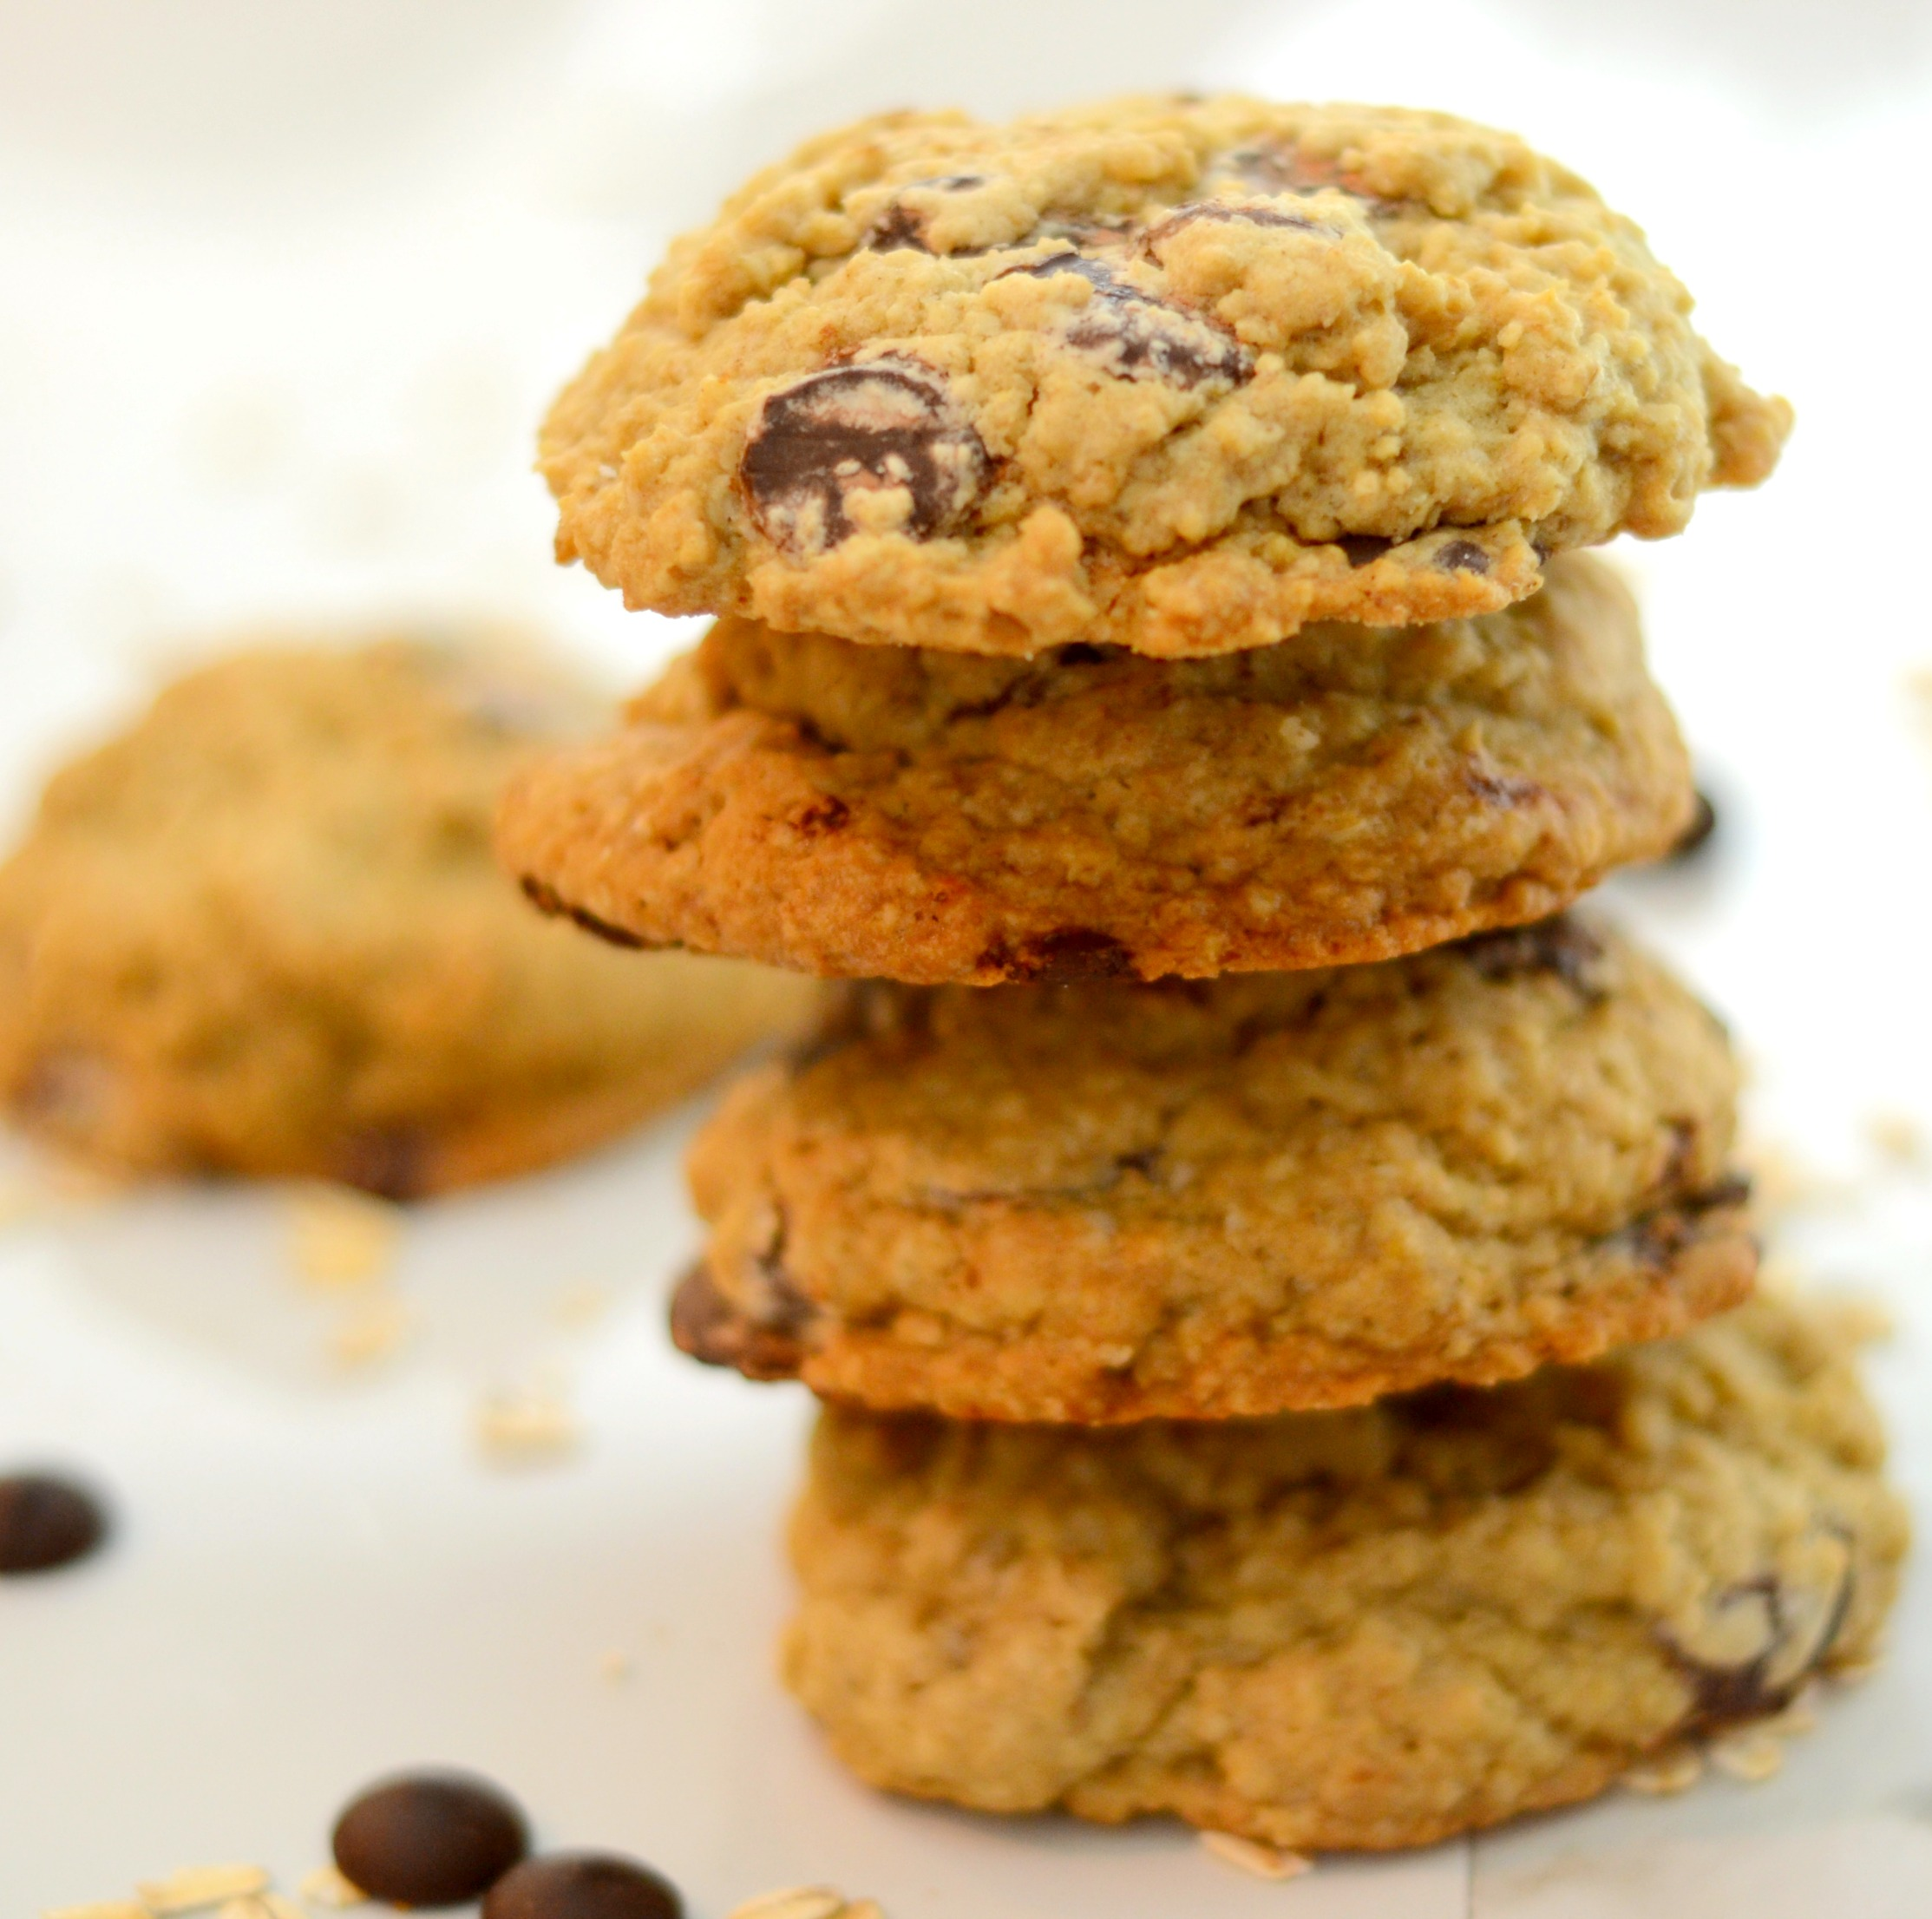 A stack of oatmeal chocolate chip cookies aganist a white background with a few chocolate chips and oats sprinkled in the foreground